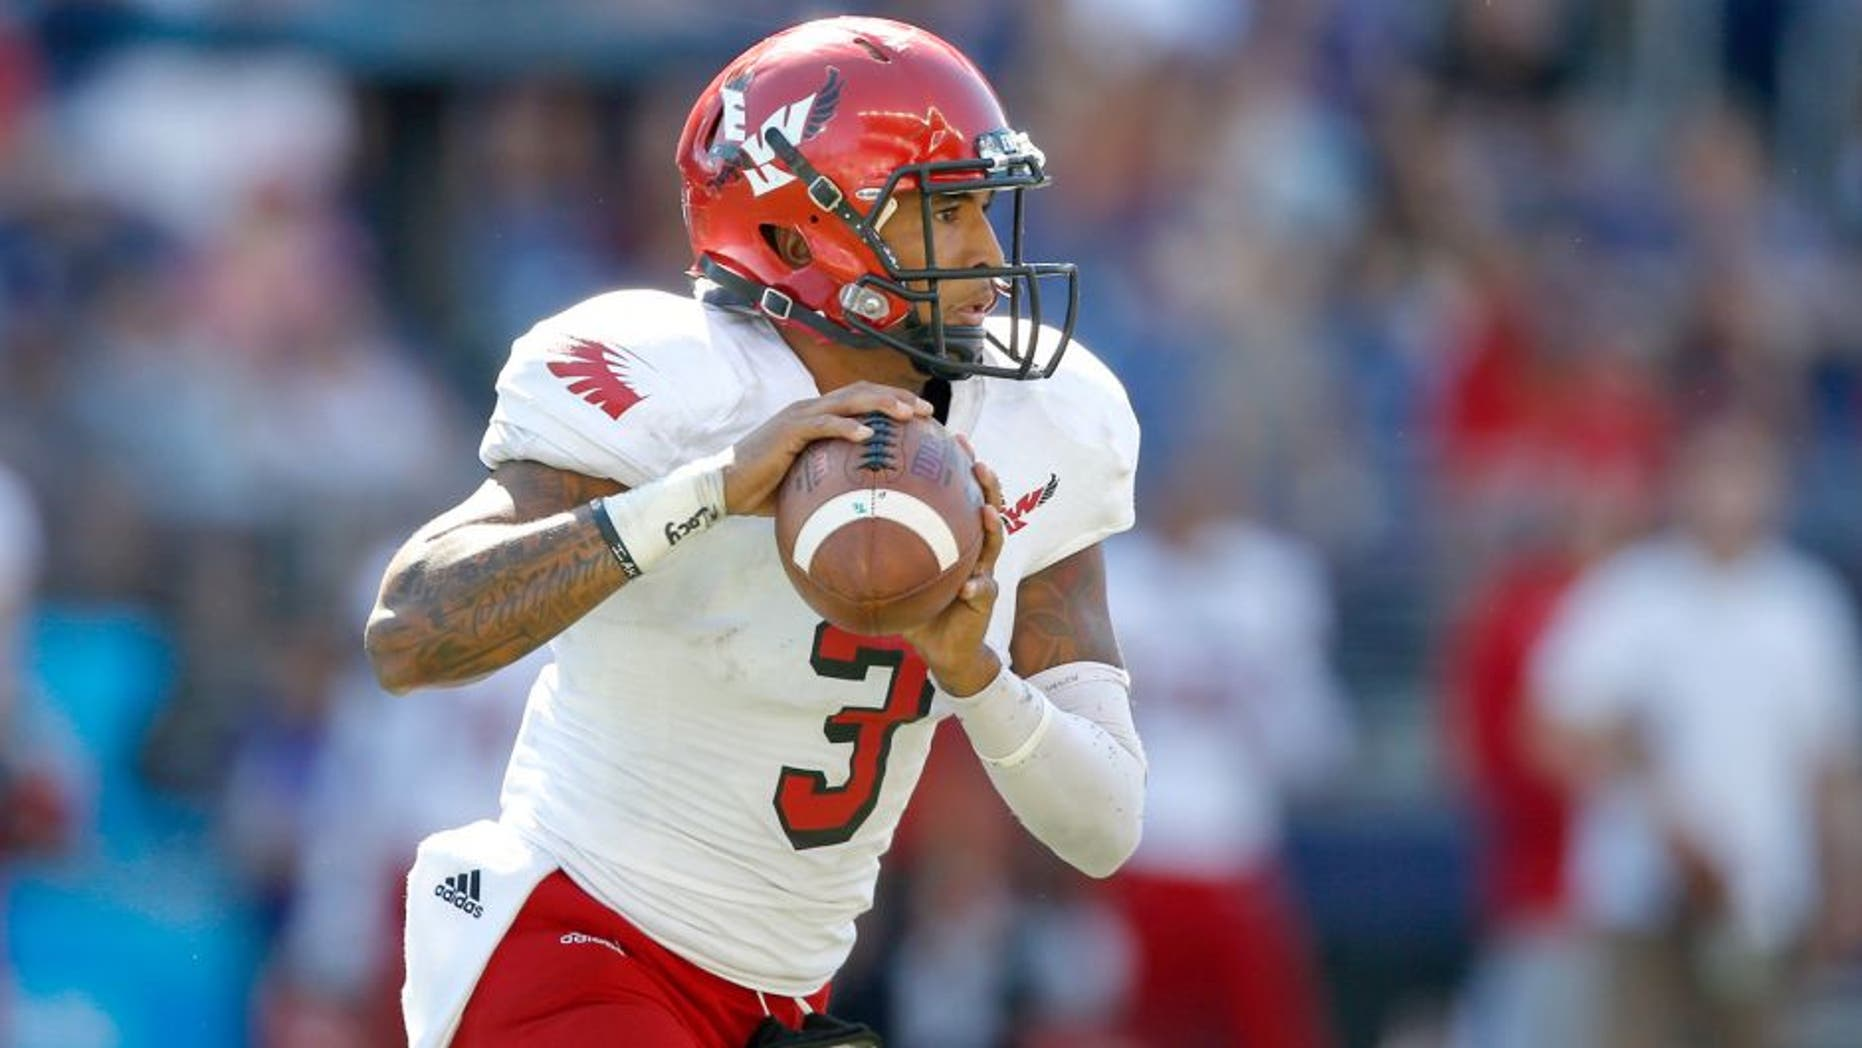 SEATTLE, WA - SEPTEMBER 06: Quarterback Vernon Adams Jr. #3 of the Eastern Washington Eagles looks downfield to pass against the Washington Huskies on September 6, 2014 at Husky Stadium in Seattle, Washington. (Photo by Otto Greule Jr/Getty Images)